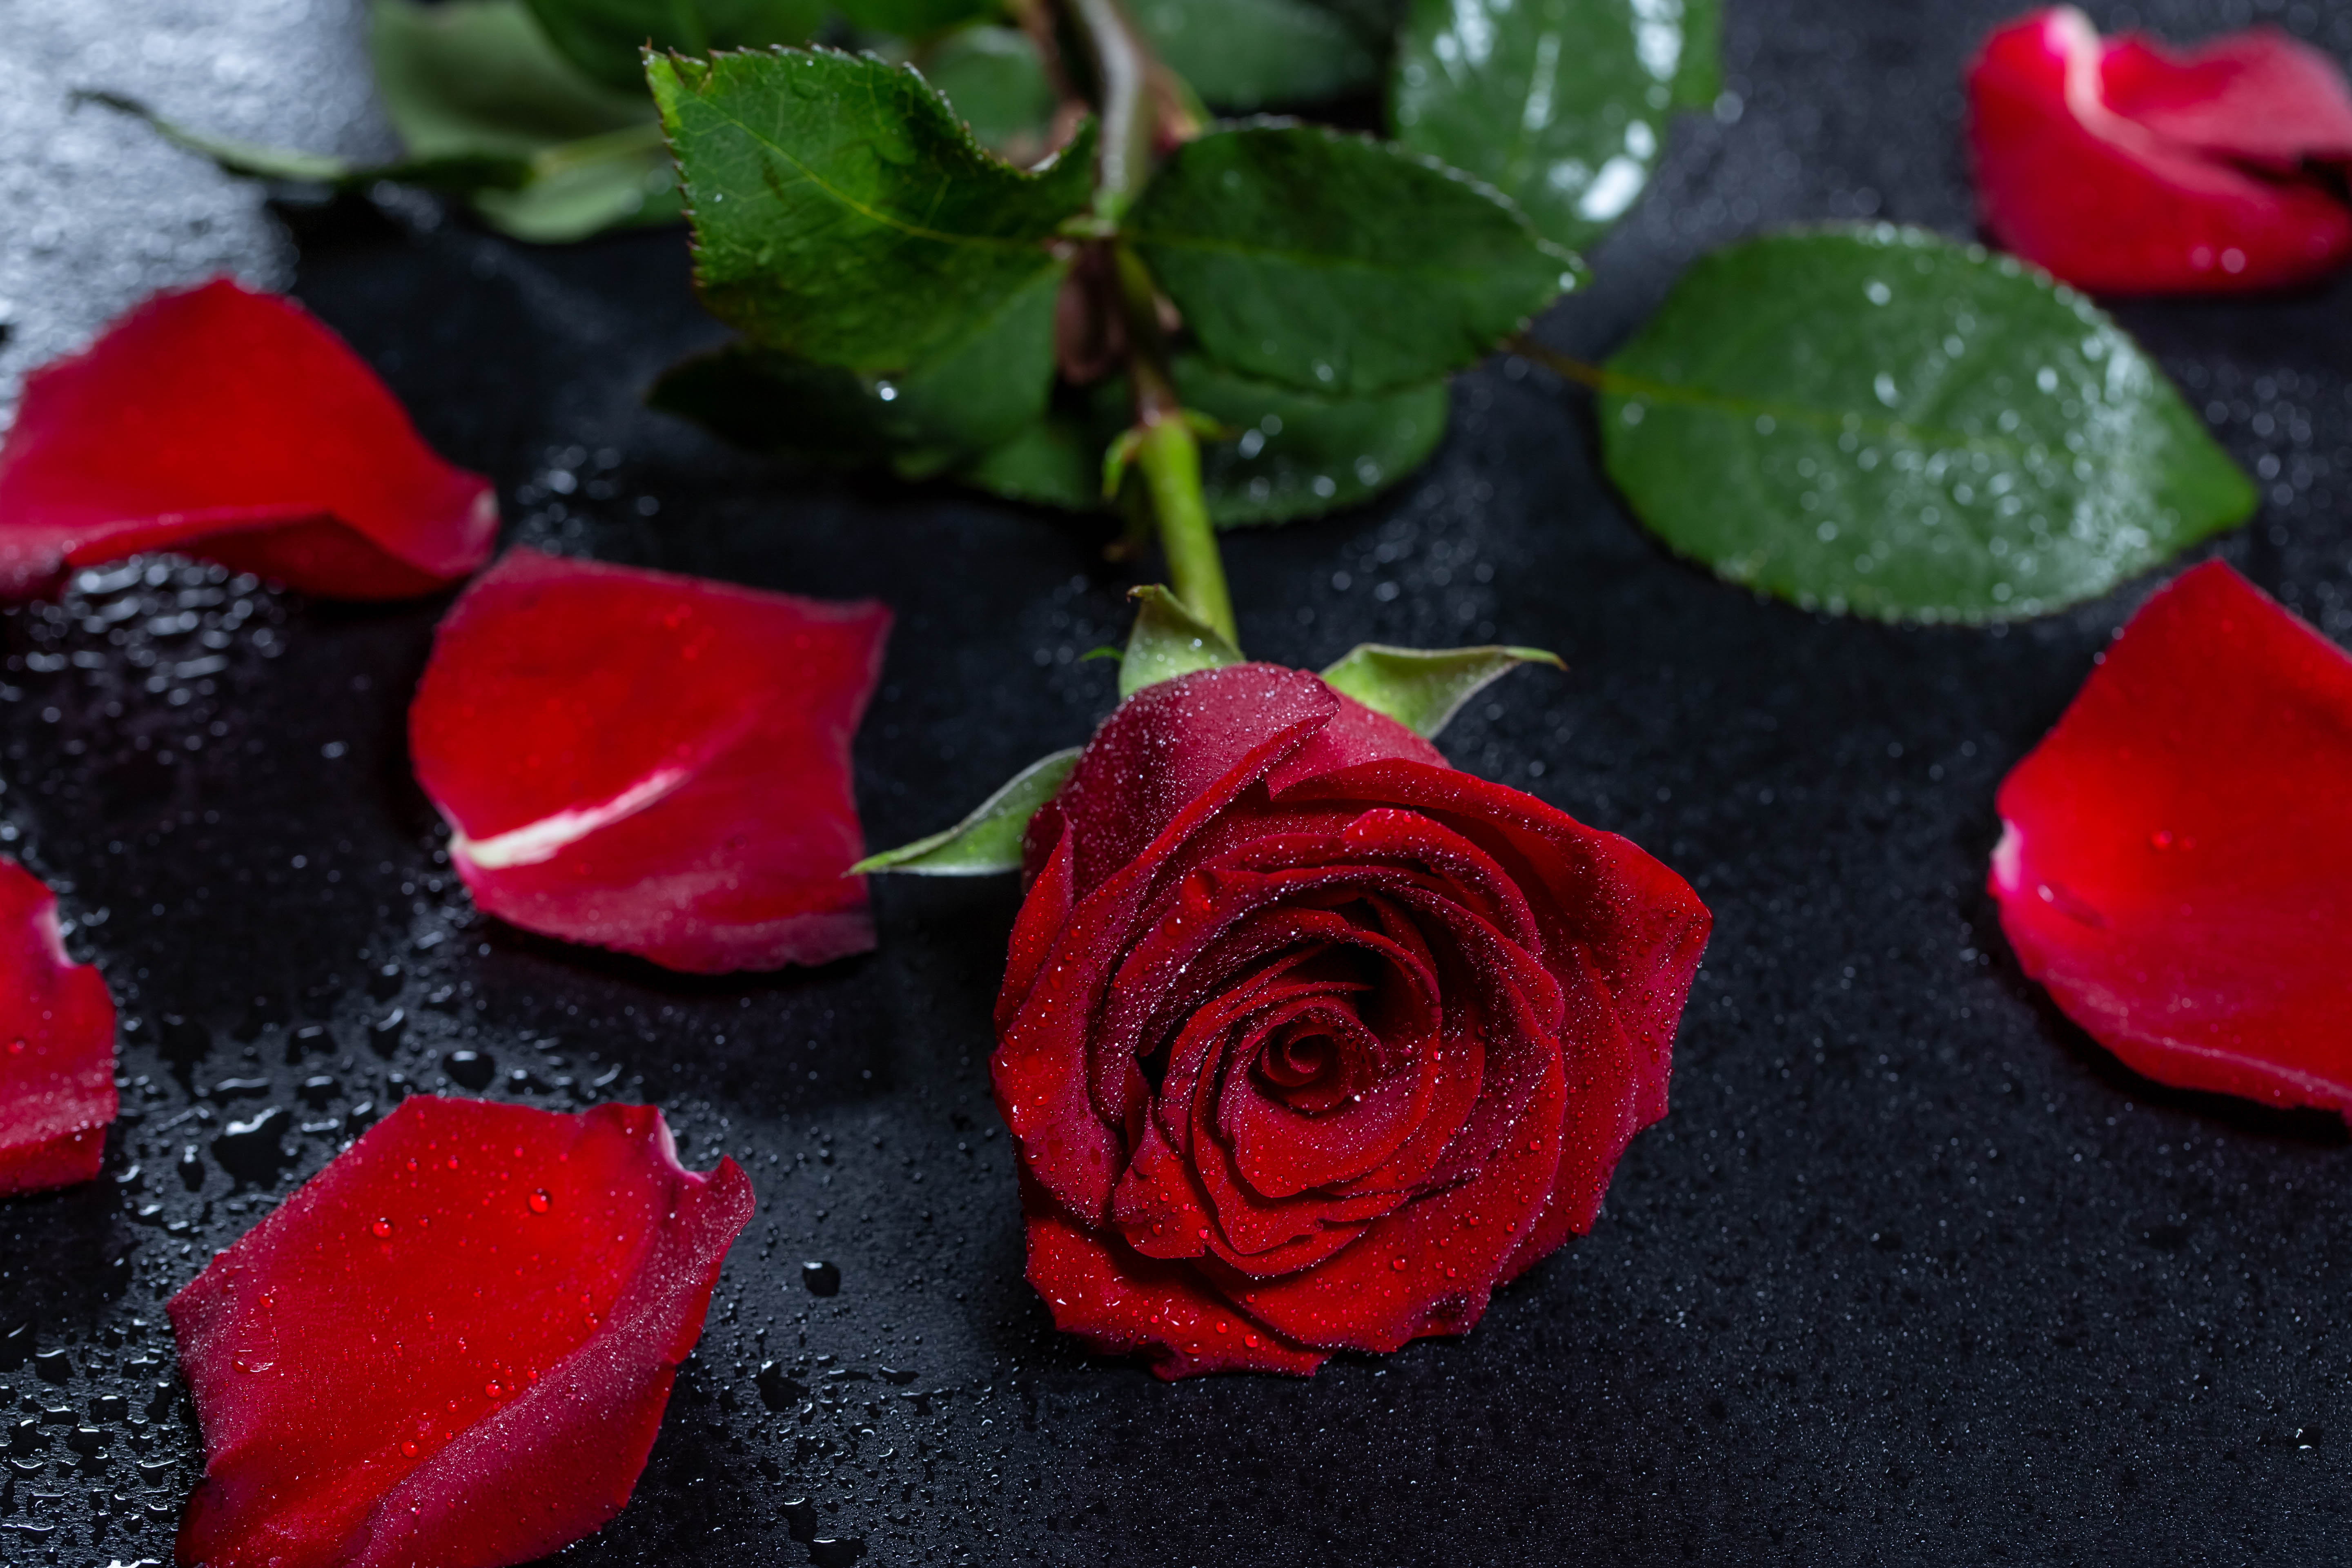 151745 download wallpaper Flowers, Drops, Flower, Rose Flower, Rose, Petals, Wet, Surface screensavers and pictures for free